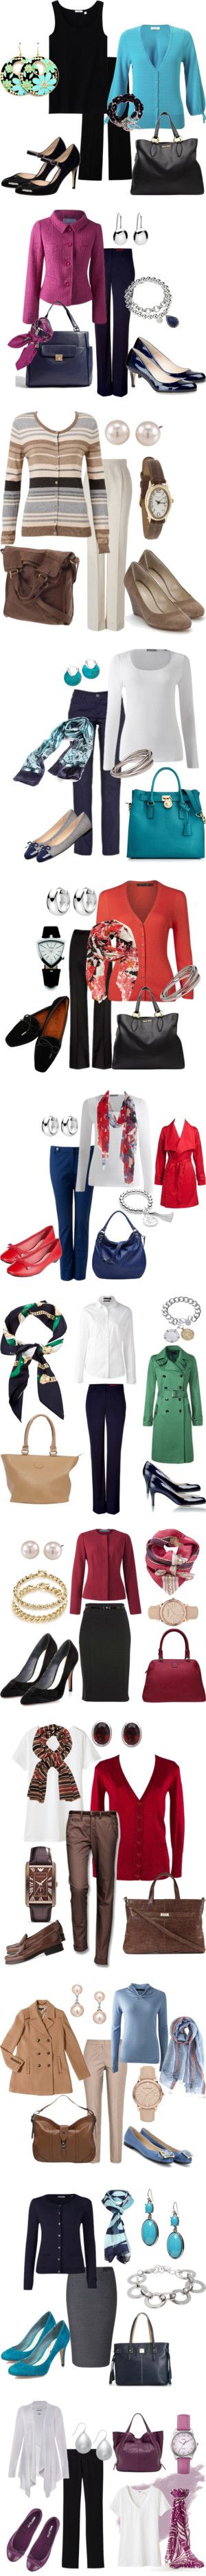 What to Wear for Work by annabouttown on Polyvore featuring Uniqlo, Monsoon, Ferrari, Miu Miu, Fantasy Jewelry Box, turquoise, tank tops, patent pumps, cardigans and black